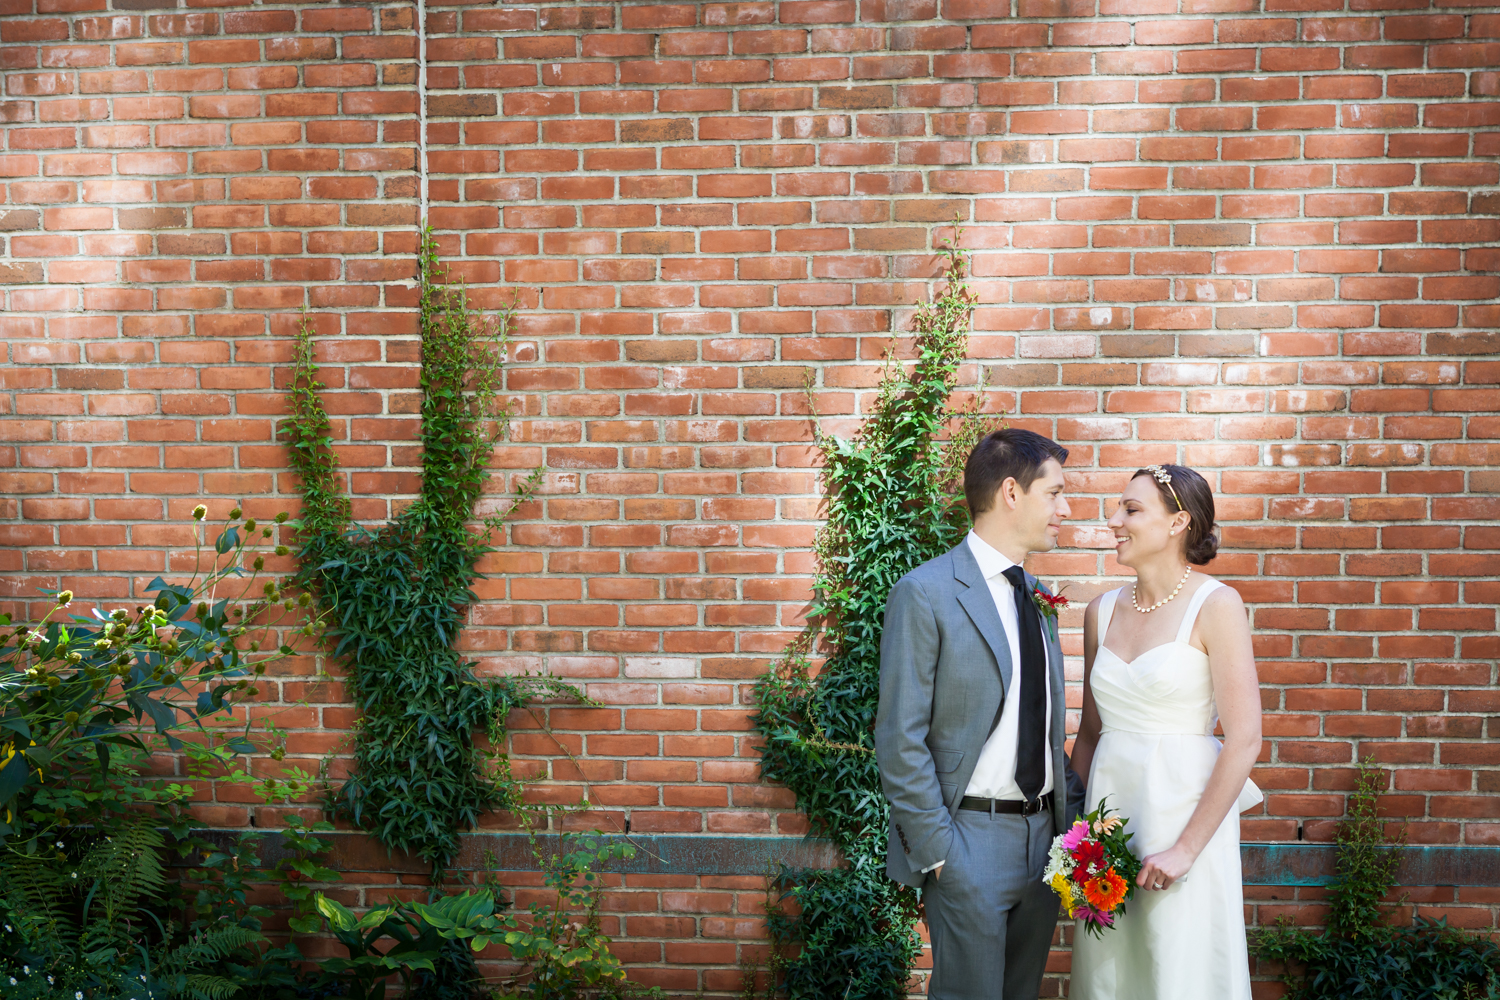 Merchant's House Museum wedding photos of bride and groom against brick wall